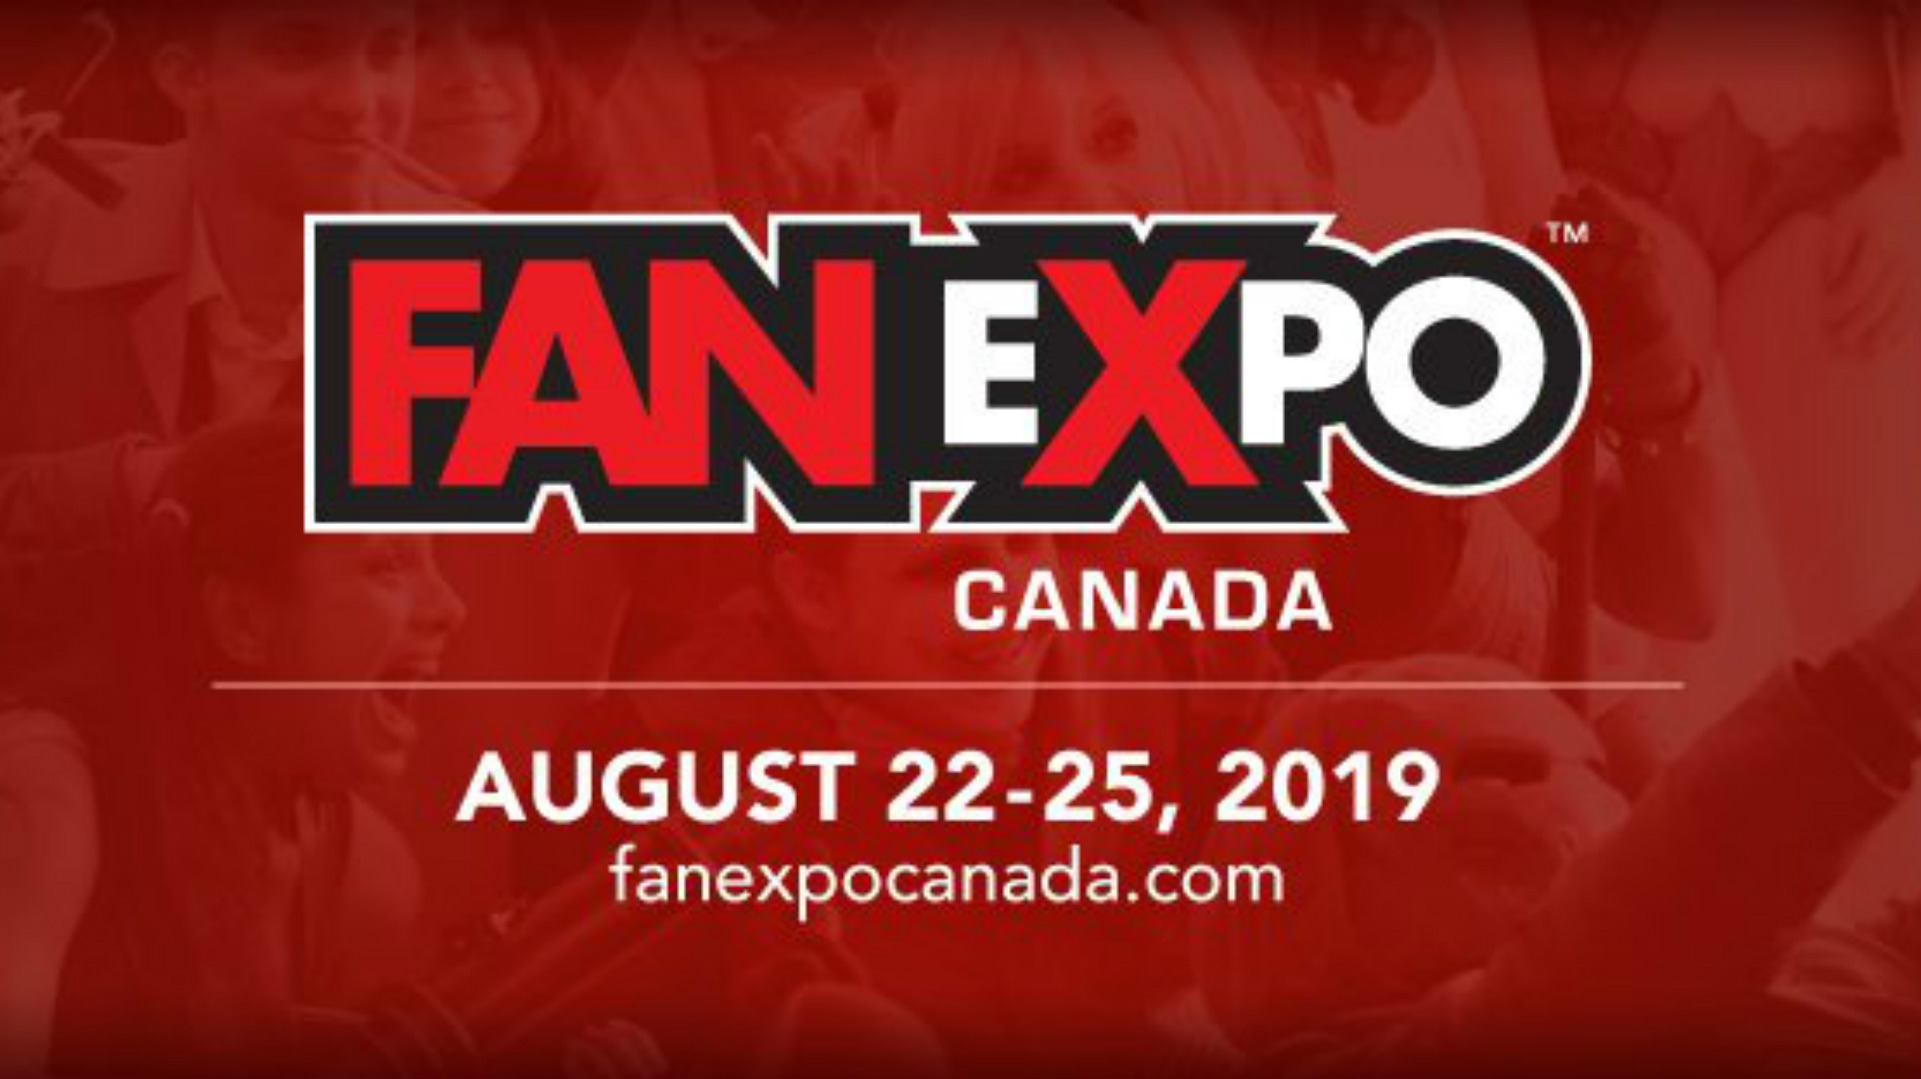 Fan Expo Canada Picnic & Parade: Start the Celebration Early